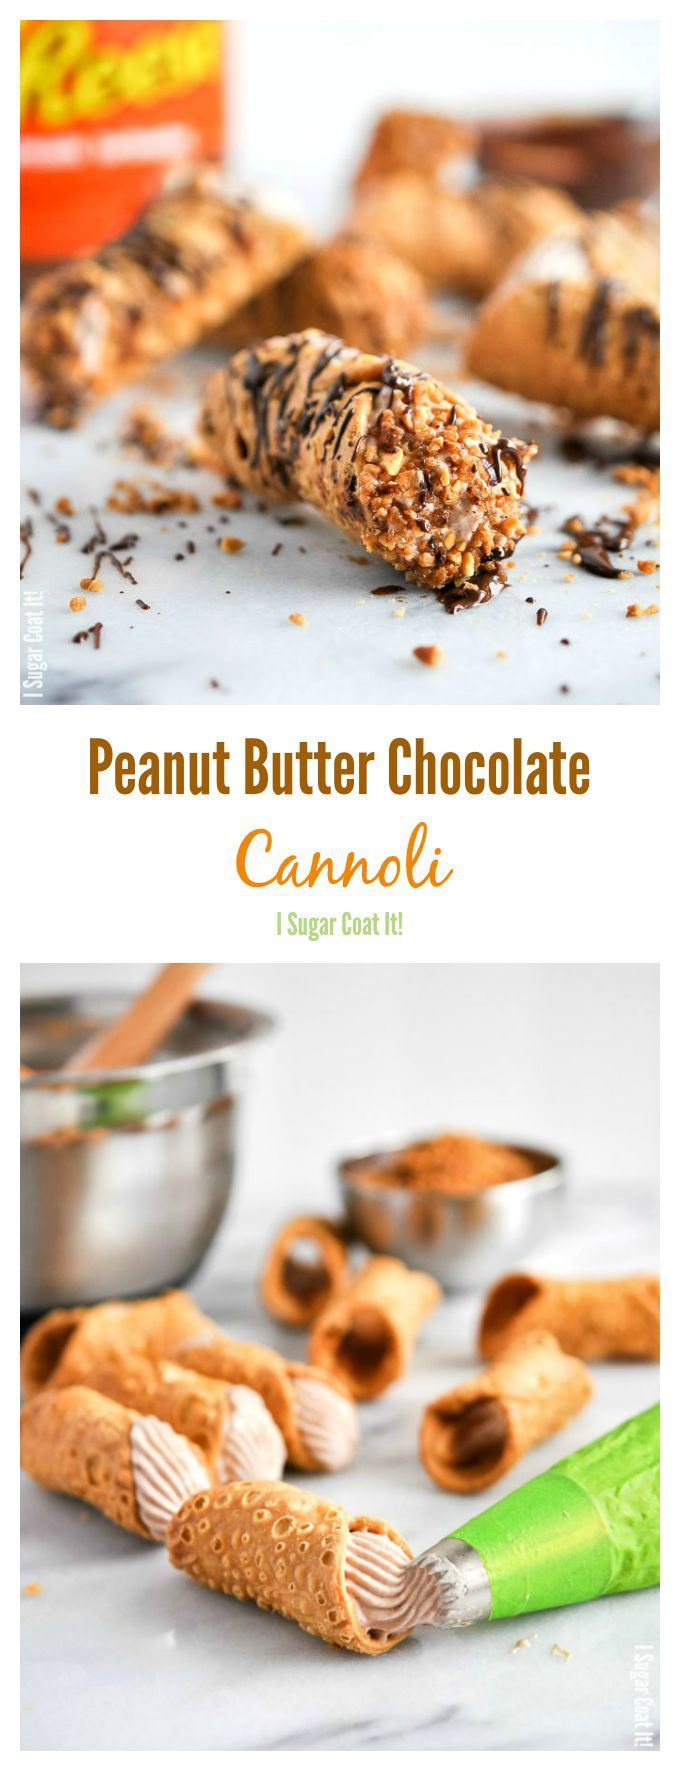 Peanut Butter Chocolate Whipped Coconut Cannoli